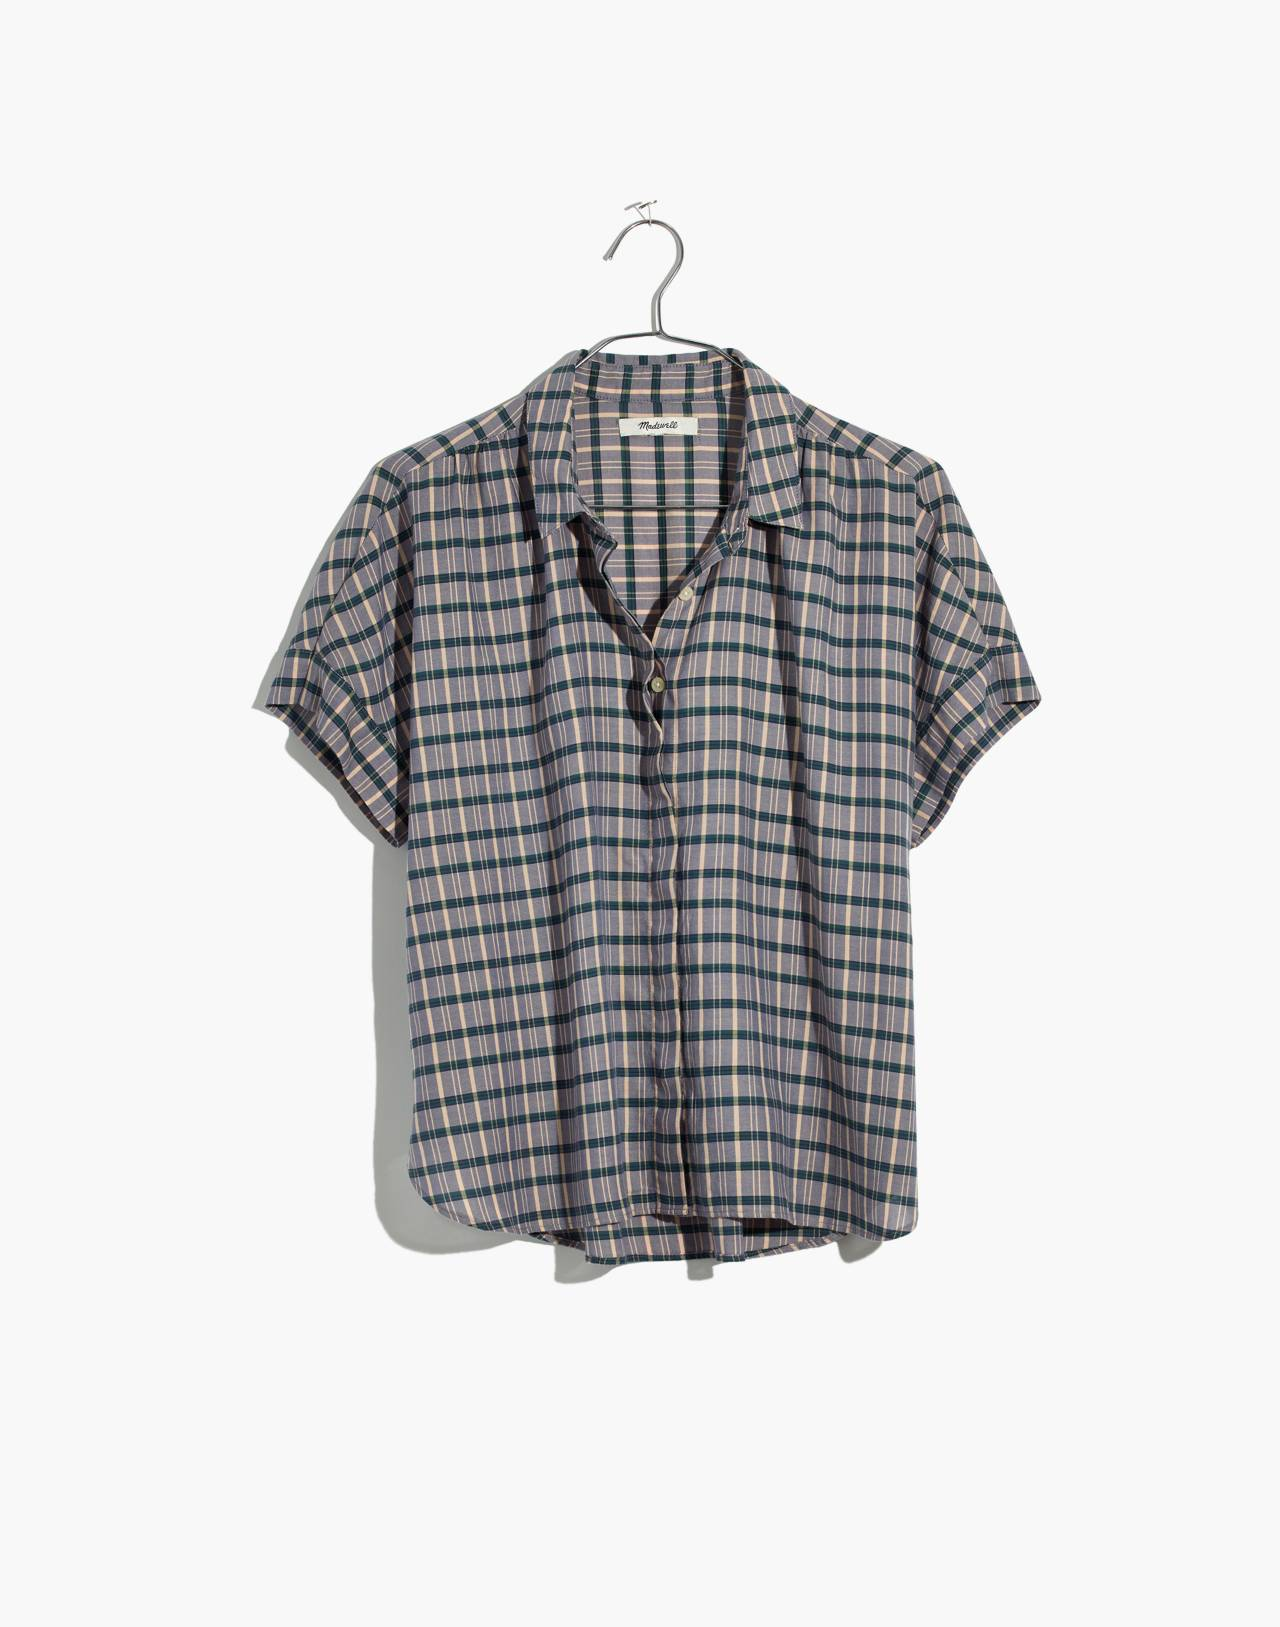 Hilltop Shirt in Precioso Plaid in faded indigo image 4